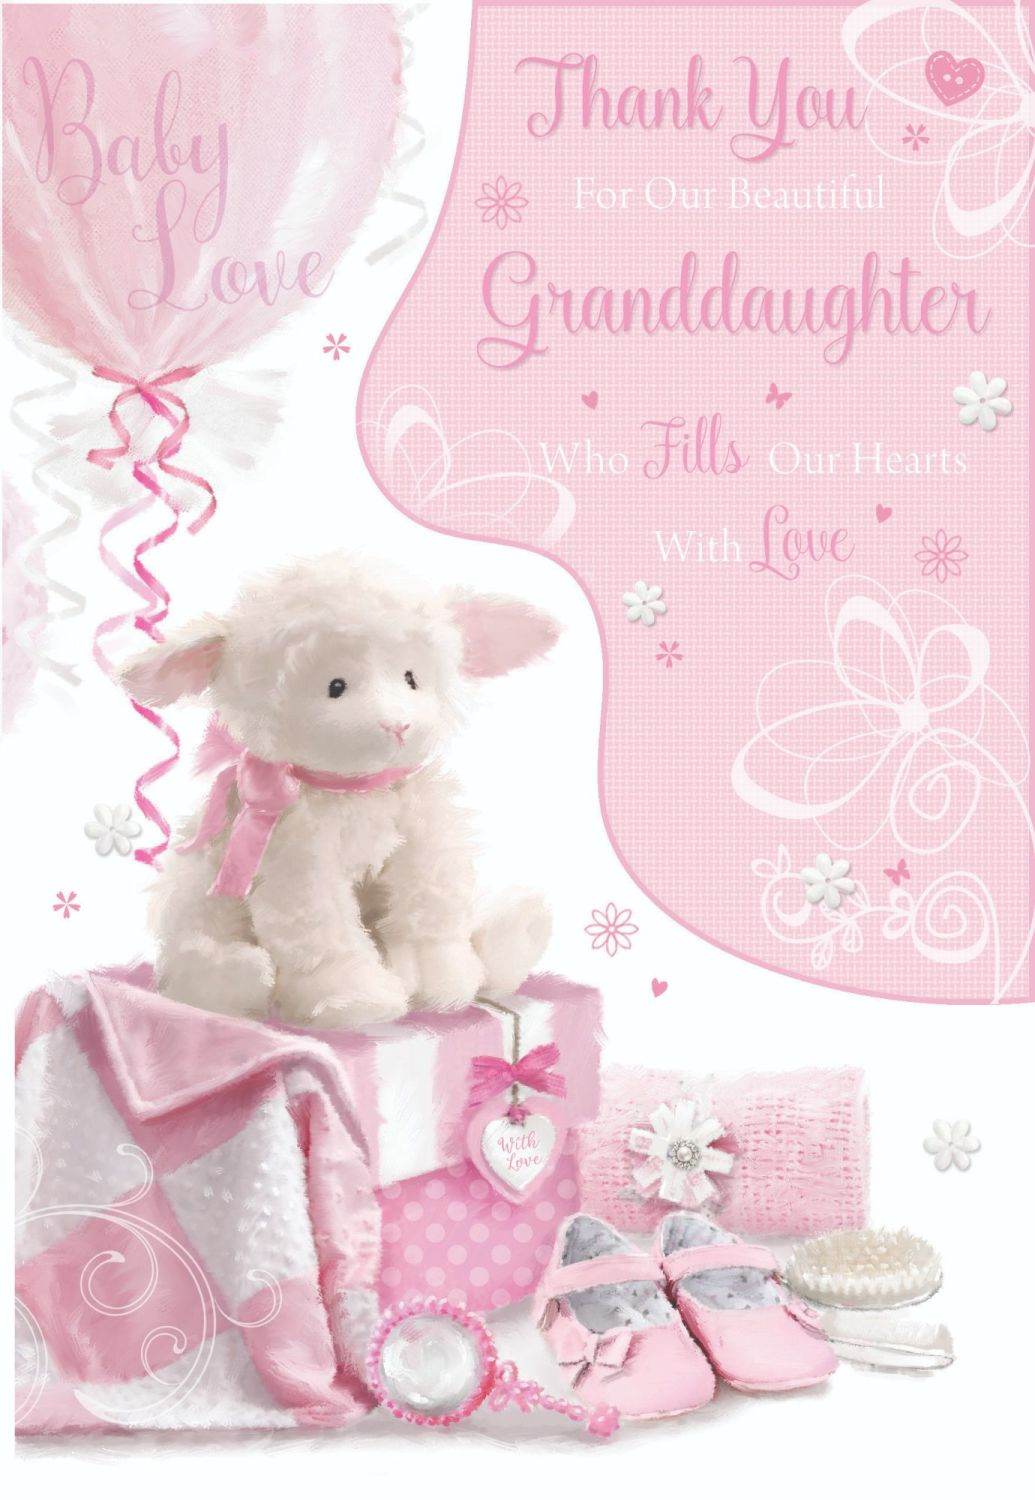 Thank You For Our Beautiful Granddaughter - WHO Fills Our HEARTS With LOVE